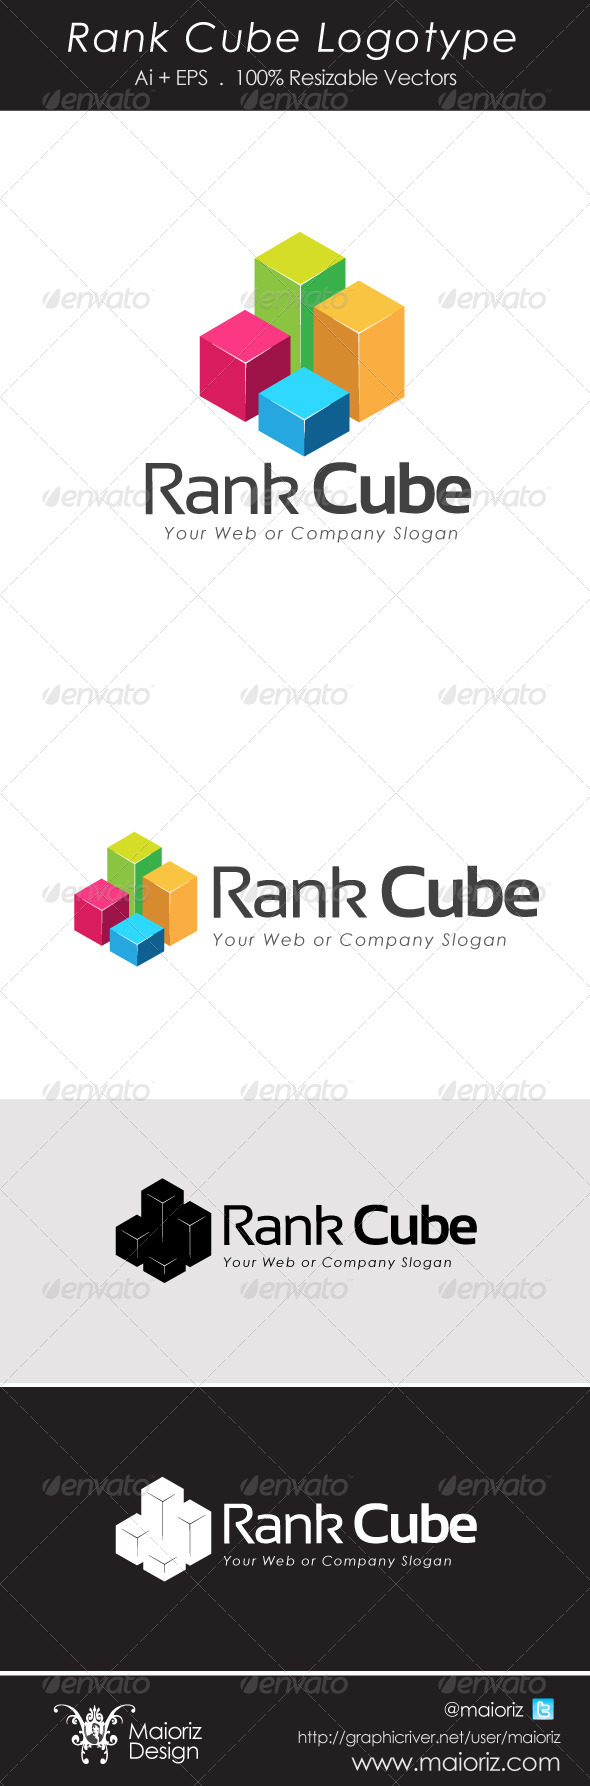 Rank Cube Logotype - 3d Abstract